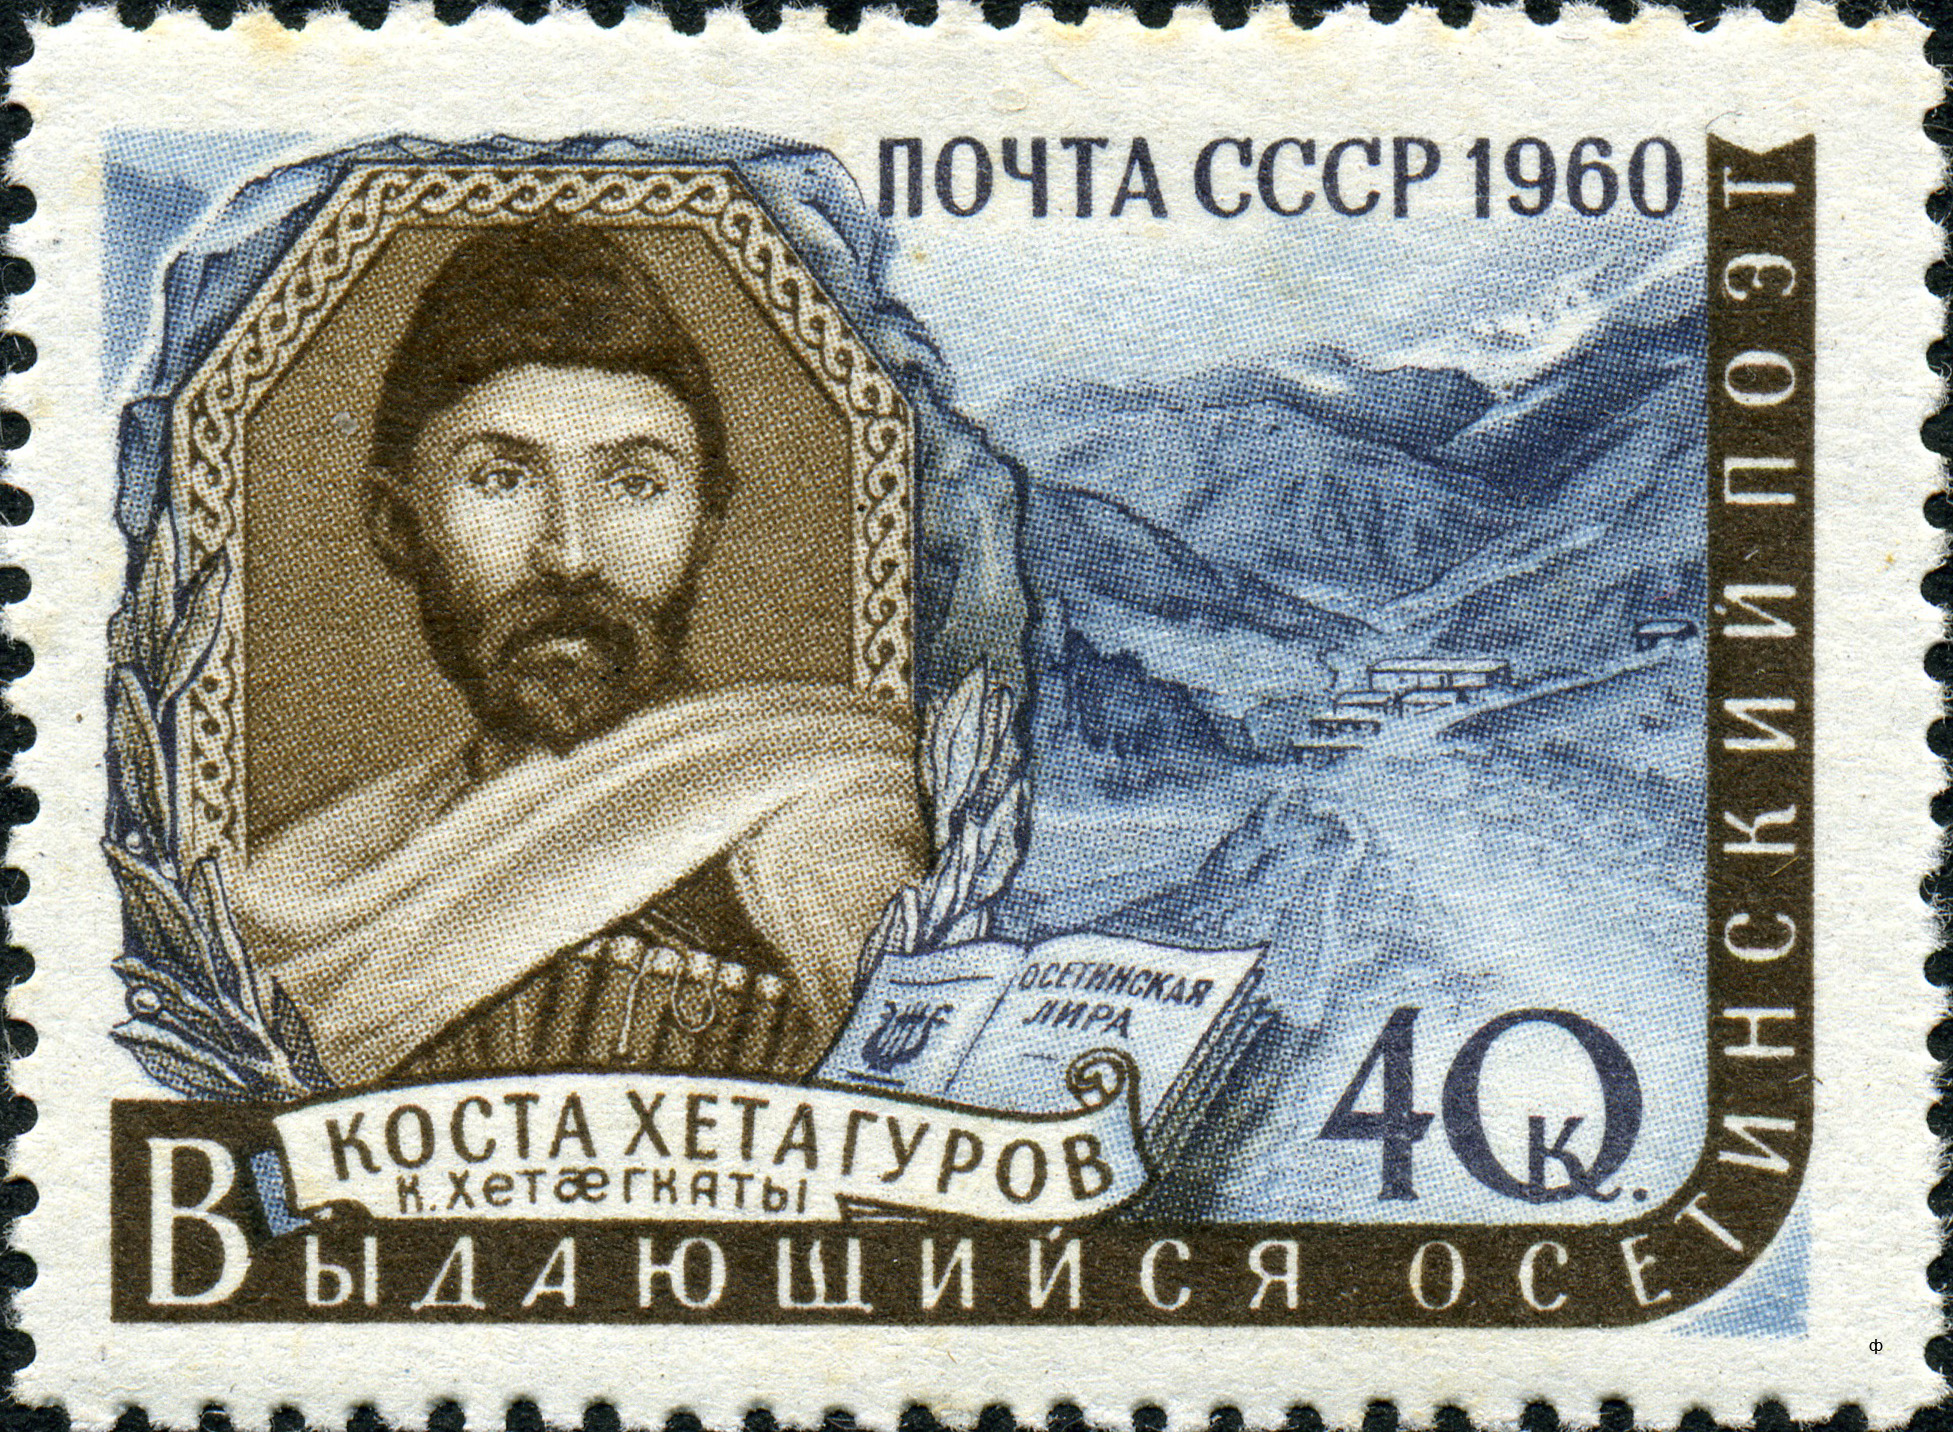 File:The Soviet Union 1960 CPA 2442 stamp (Kosta Khetagurov, Ossetian Poet,